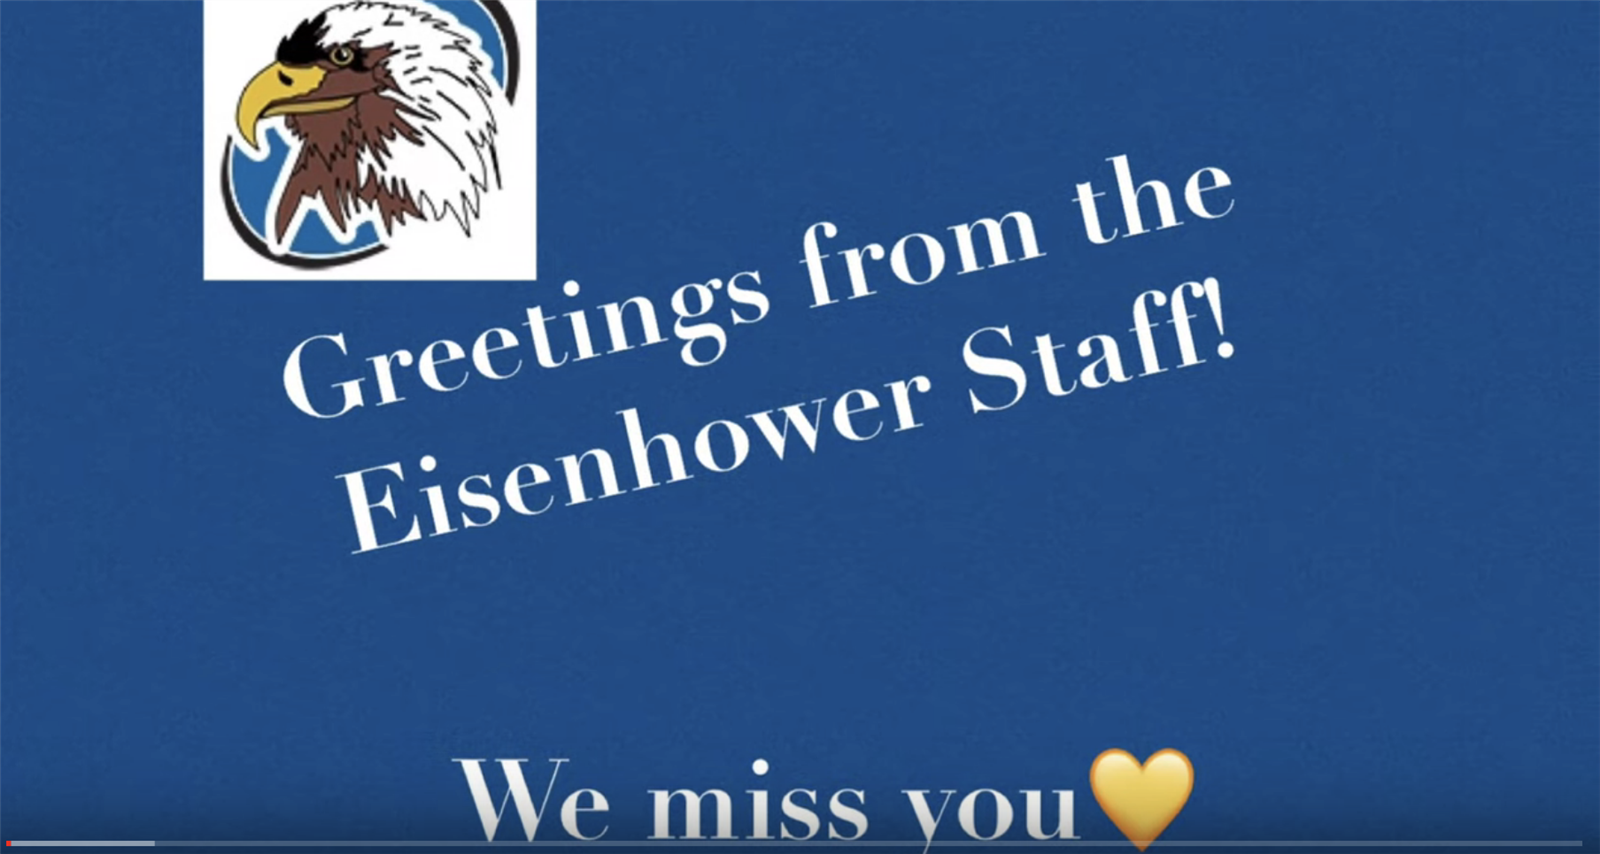 Greeting From the Eisenhower Staff